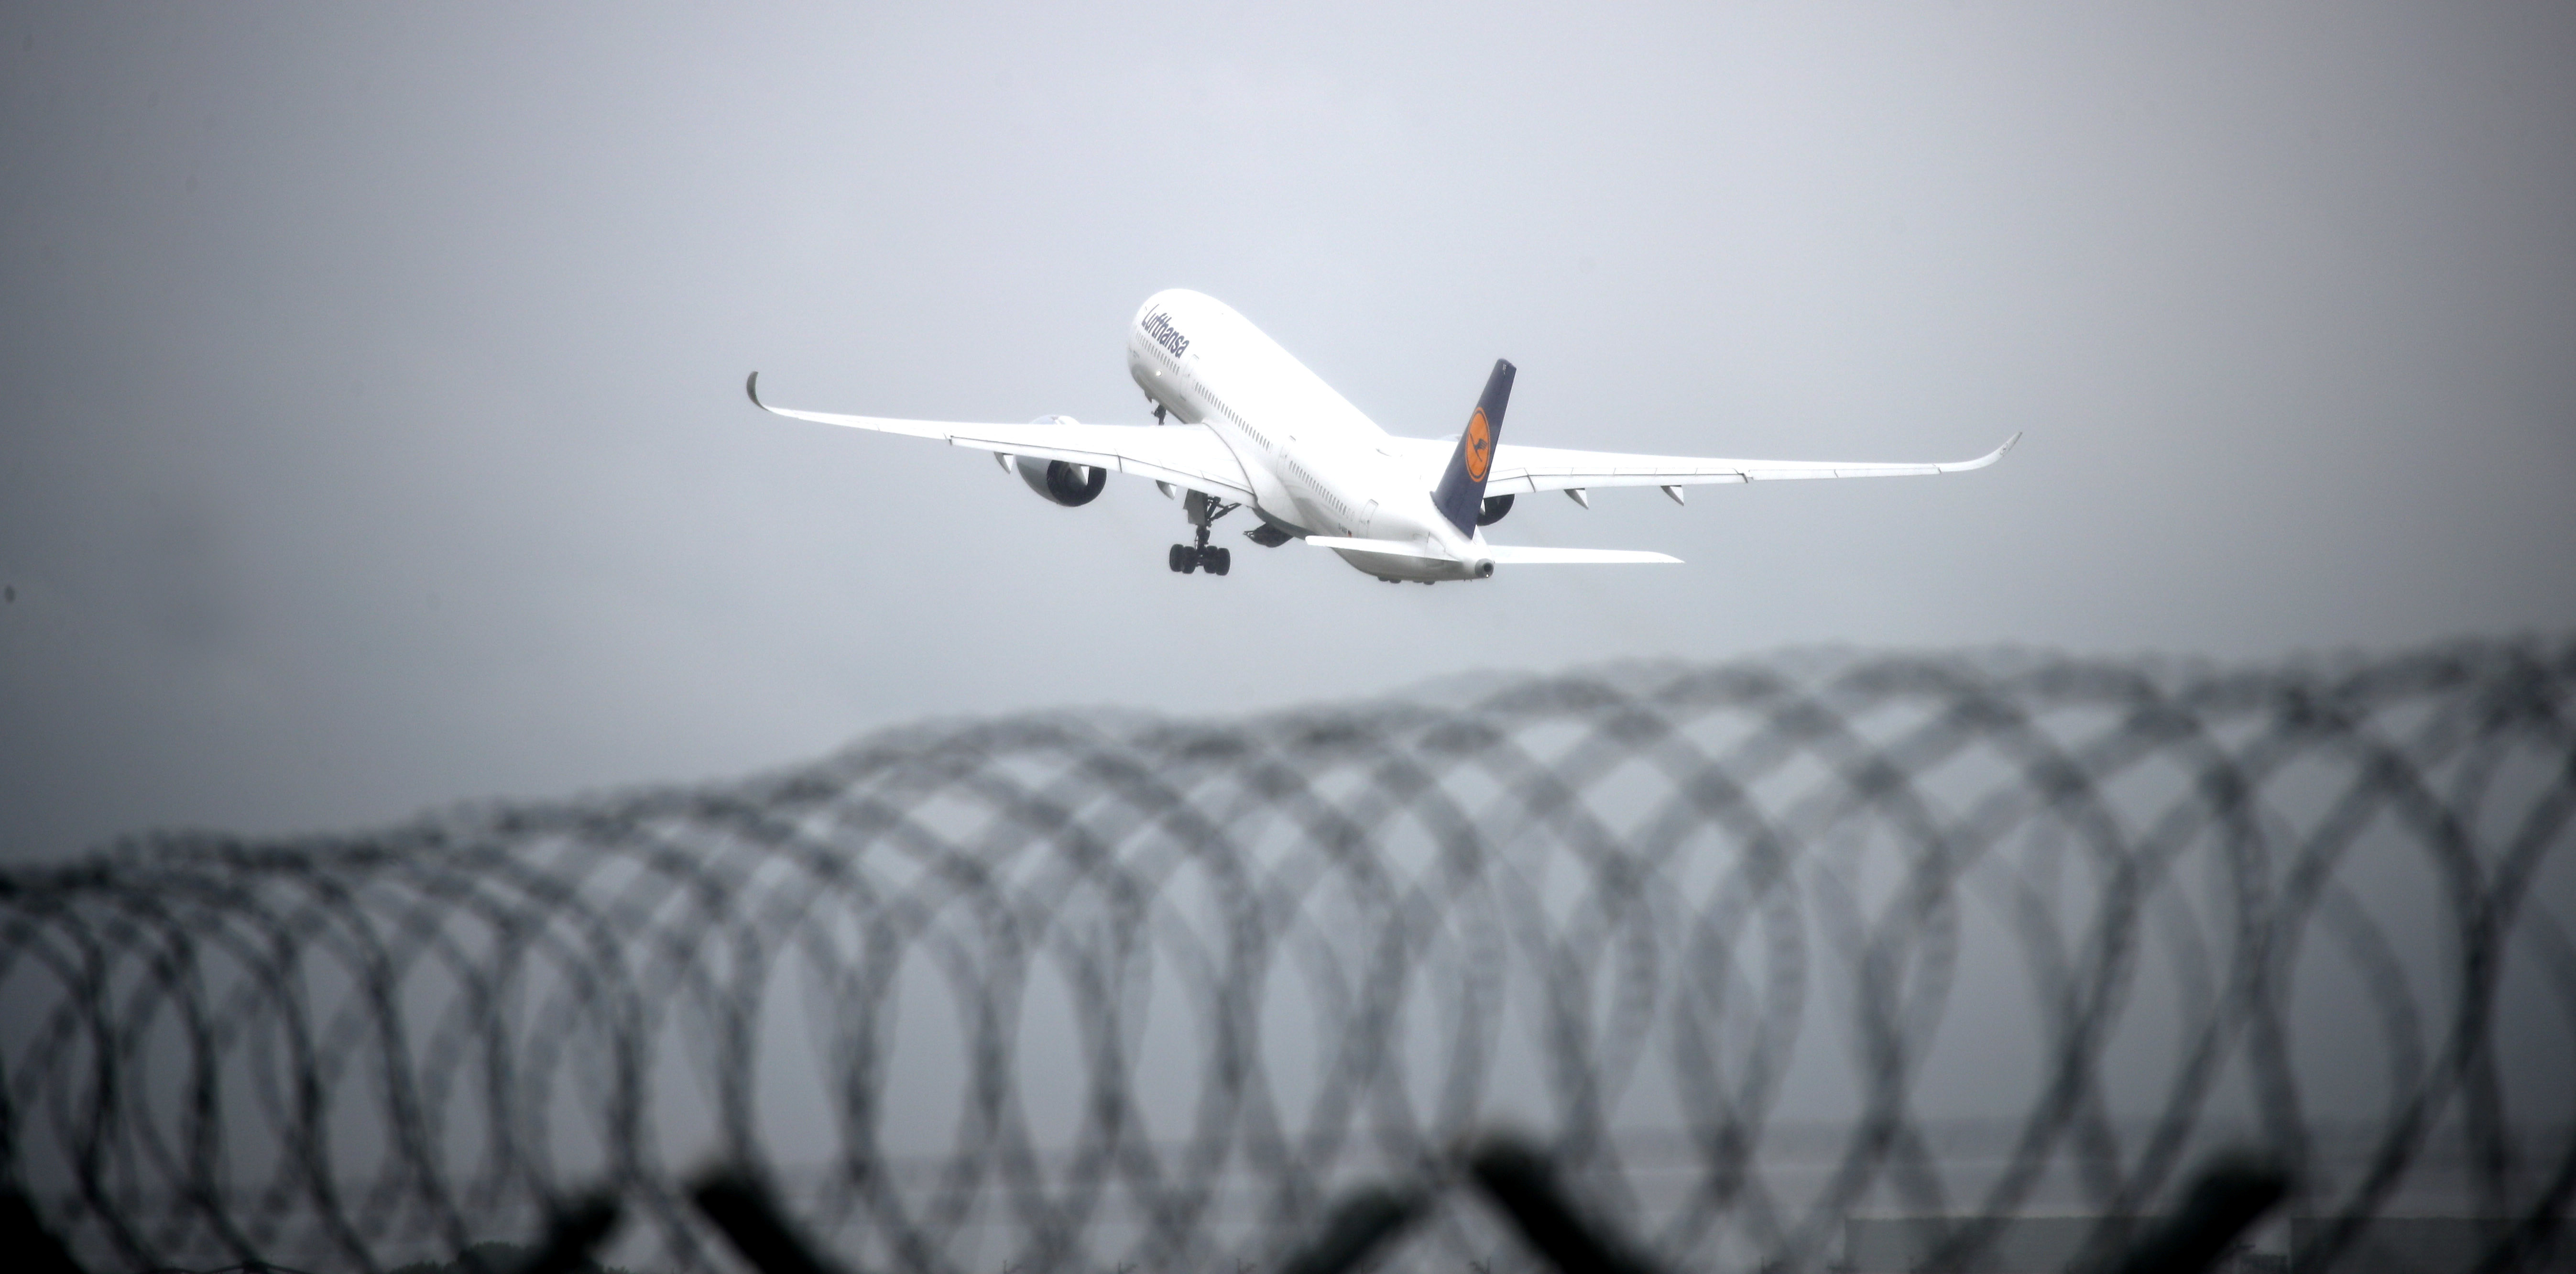 An Airplane of German carrier Lufthansa takes off from Munich International Airport, Germany, August 4, 2020. REUTERS/Michael Dalder - RC227I94WDX0